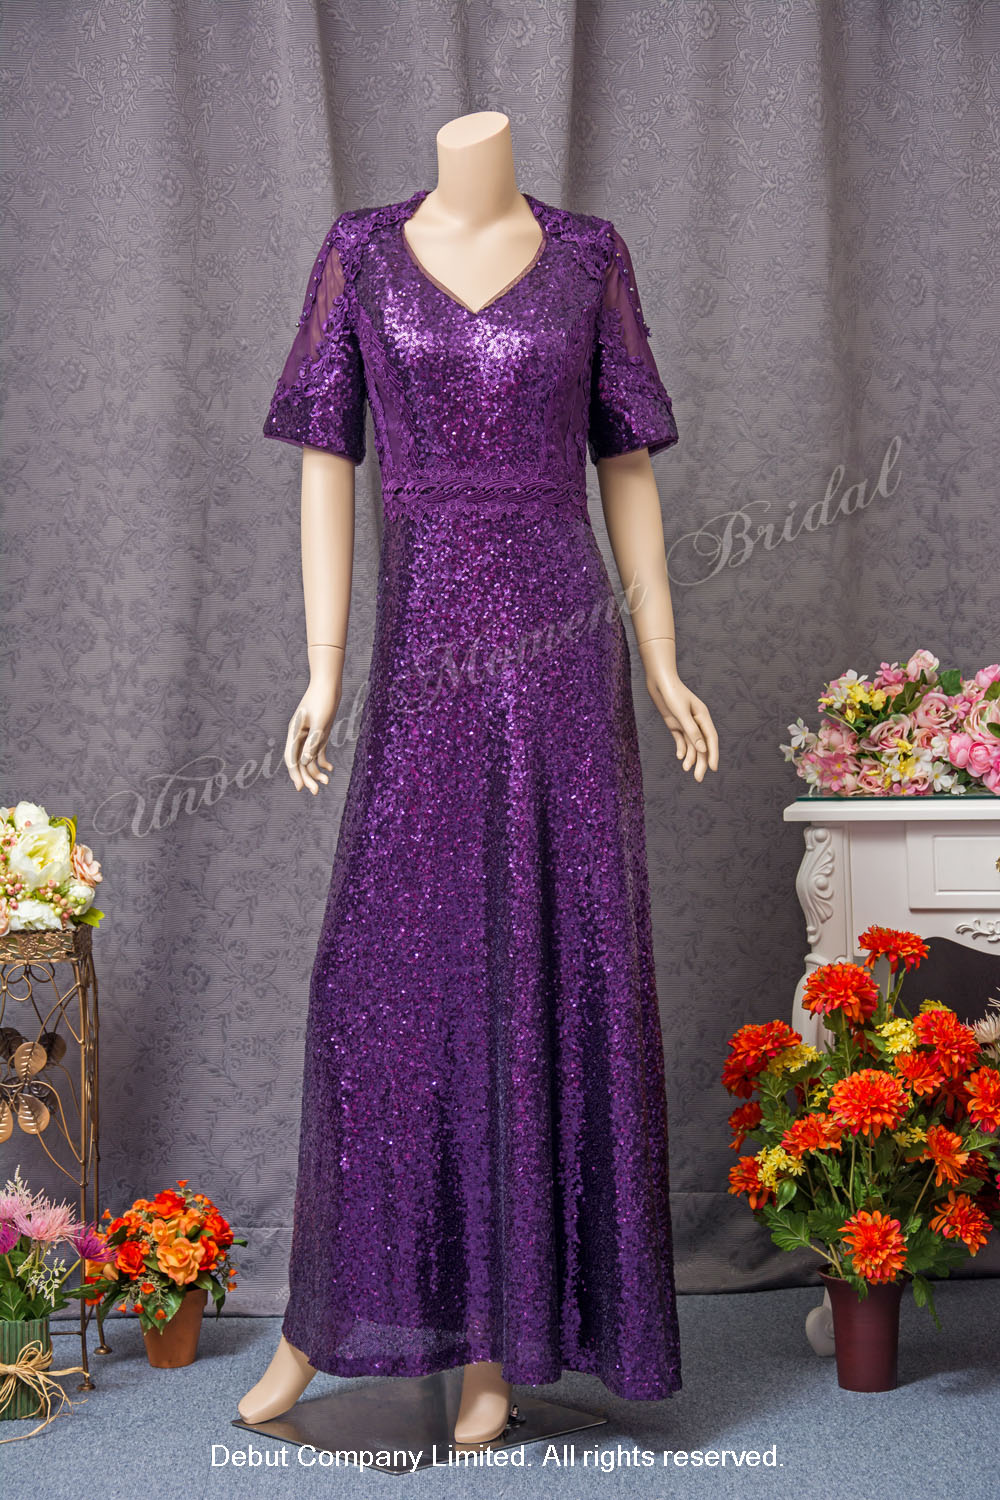 Middle-length sleeves, V-shape round neckline, sequins embellishments, Mother-of-the-bride Dress. Colour: Purple. 中袖, V領, 閃片, 紫色媽咪奶奶晩裝